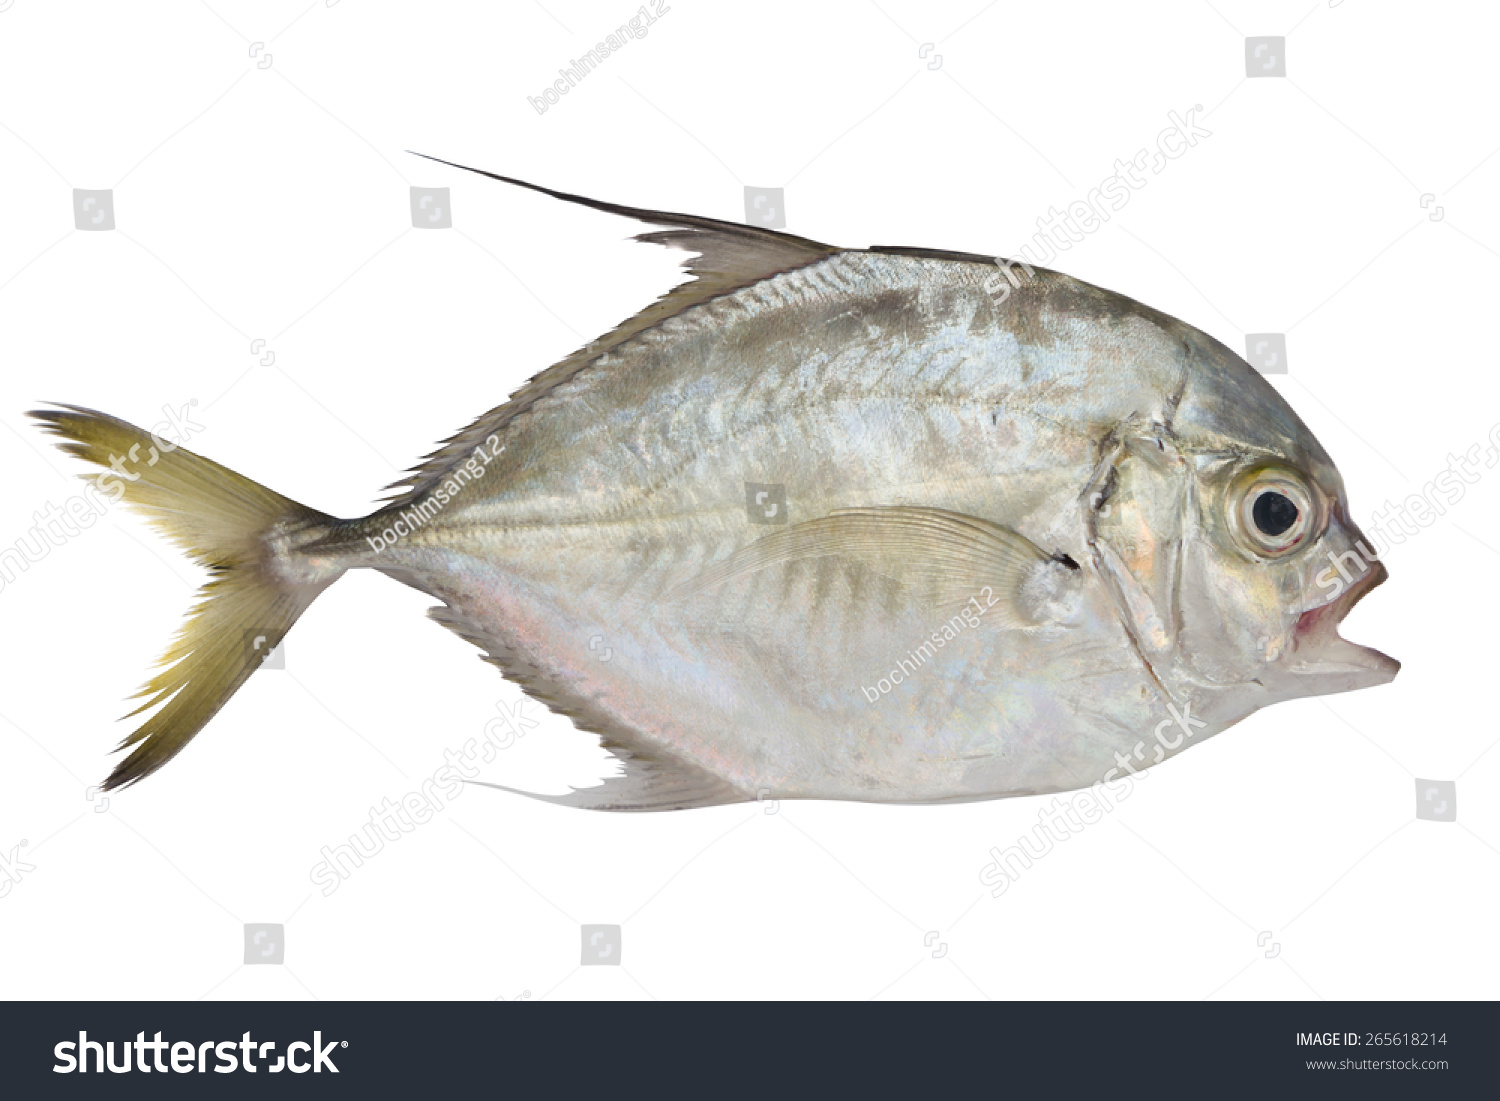 Pompano fish isolated on white background stock photo for Picture of pompano fish